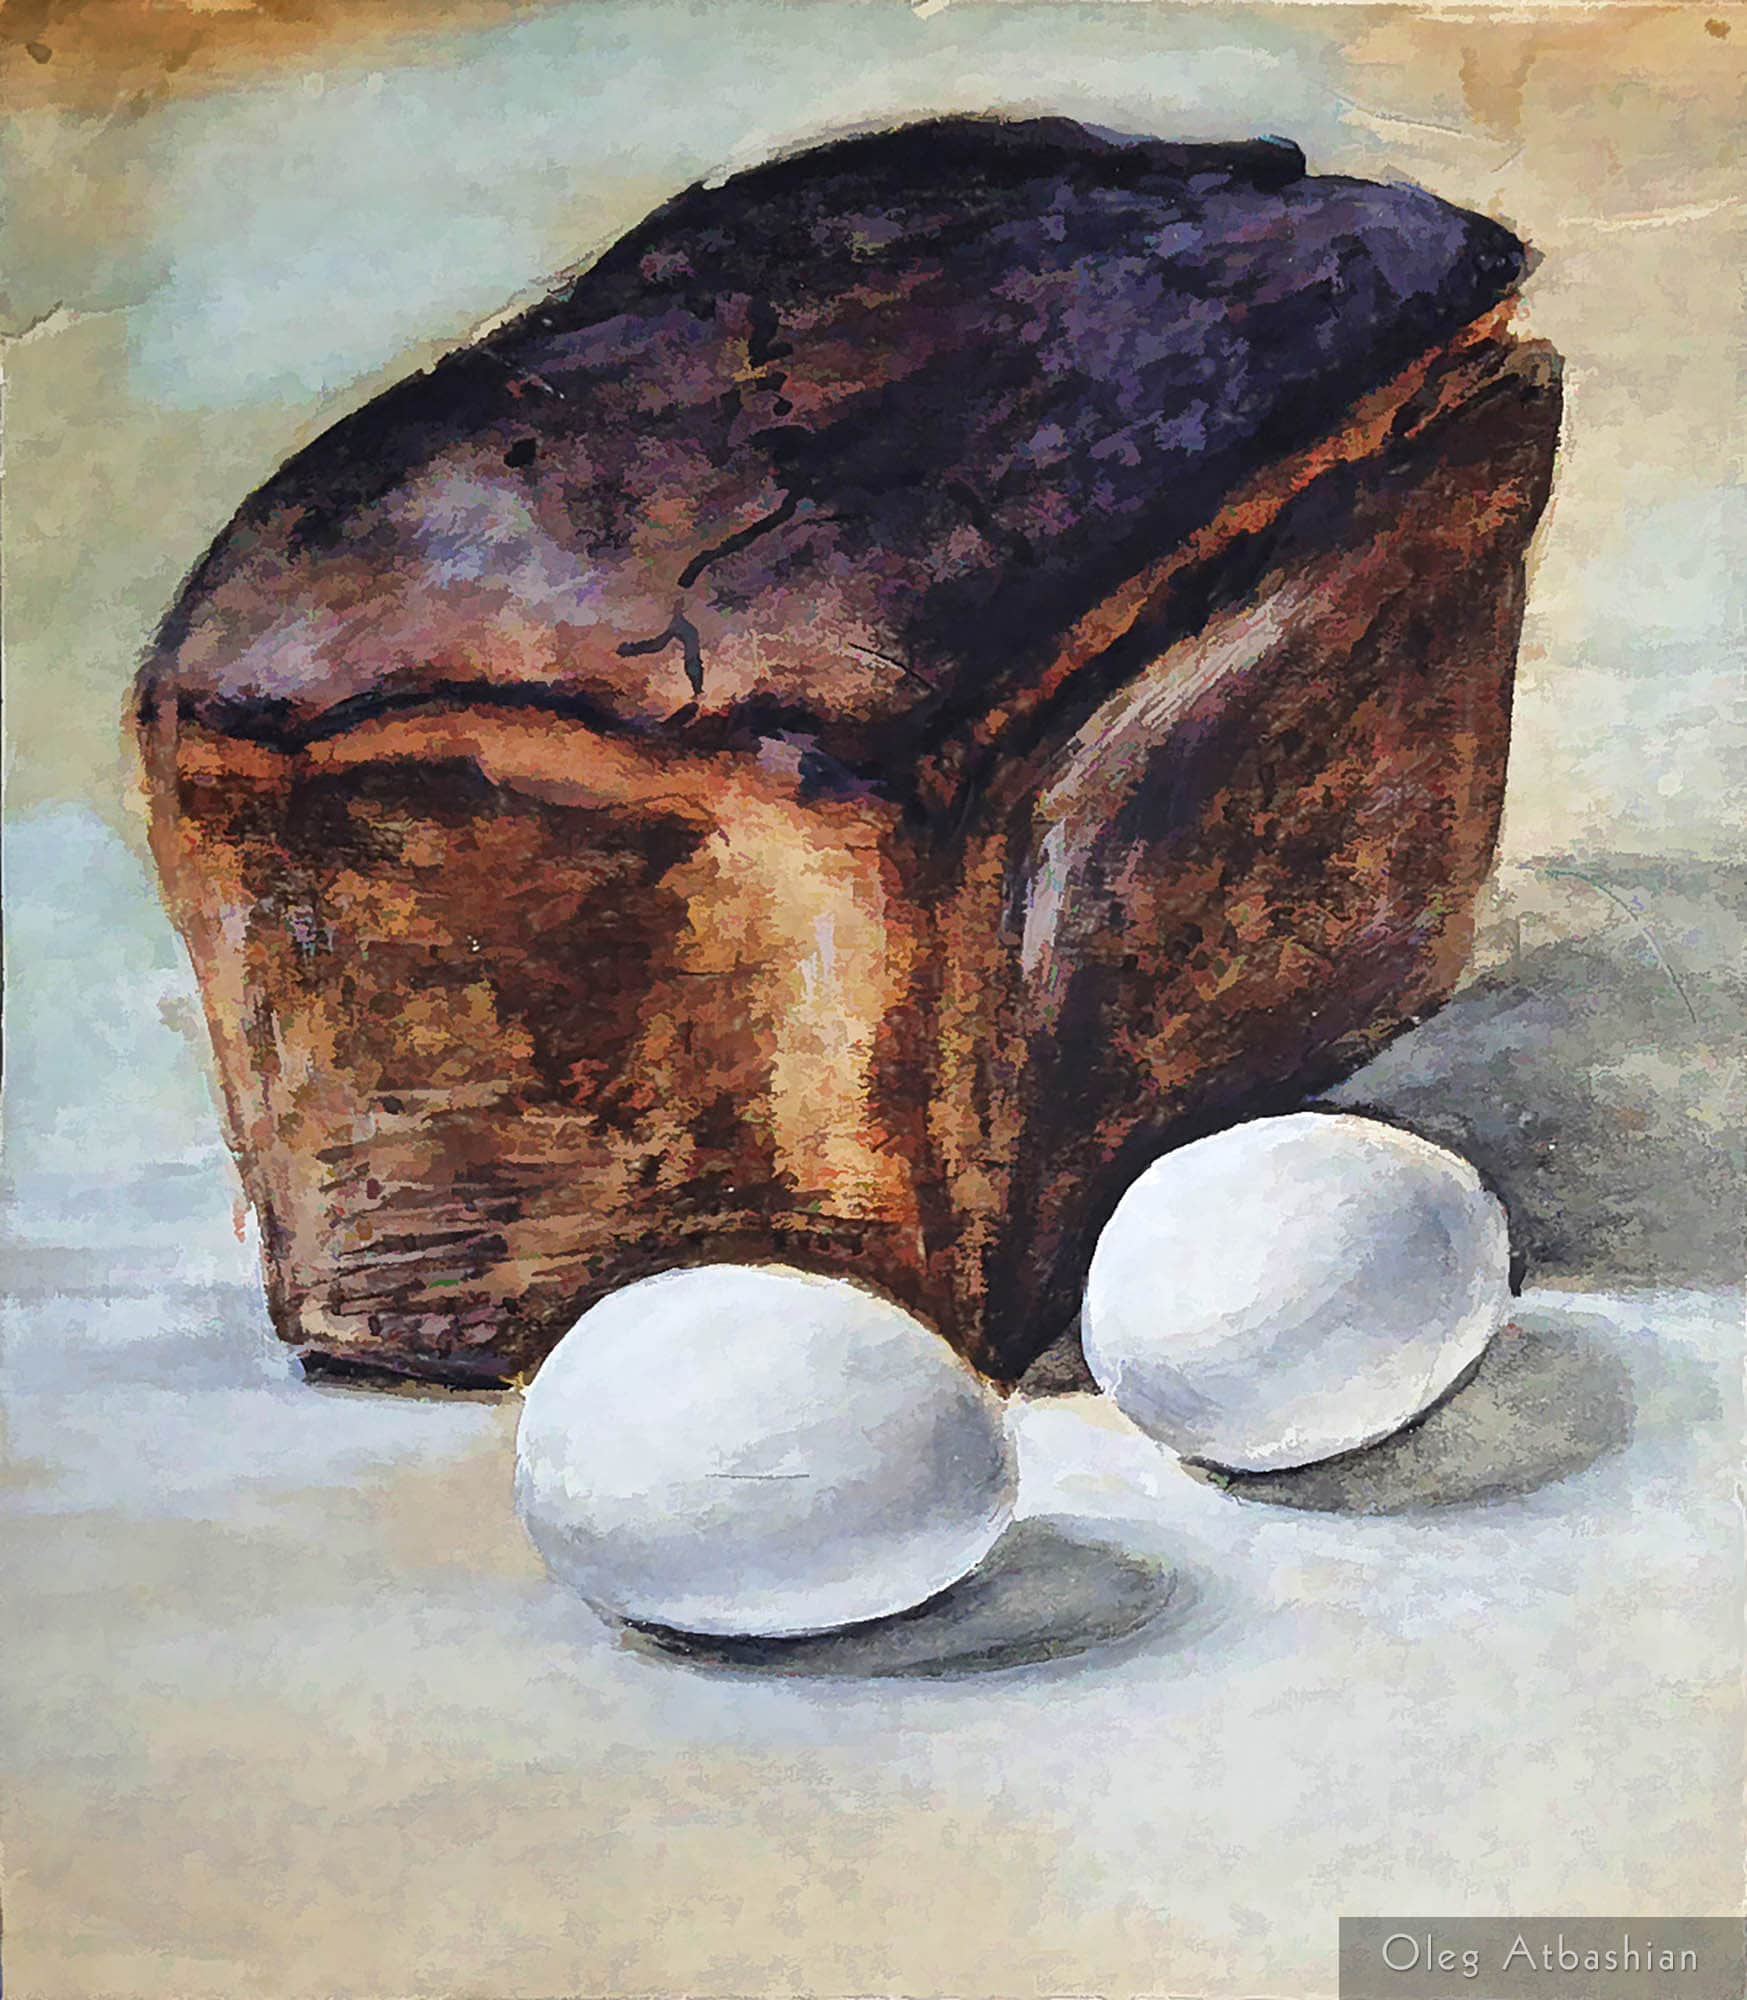 Still life: Black Bread and Boiled Eggs - a student